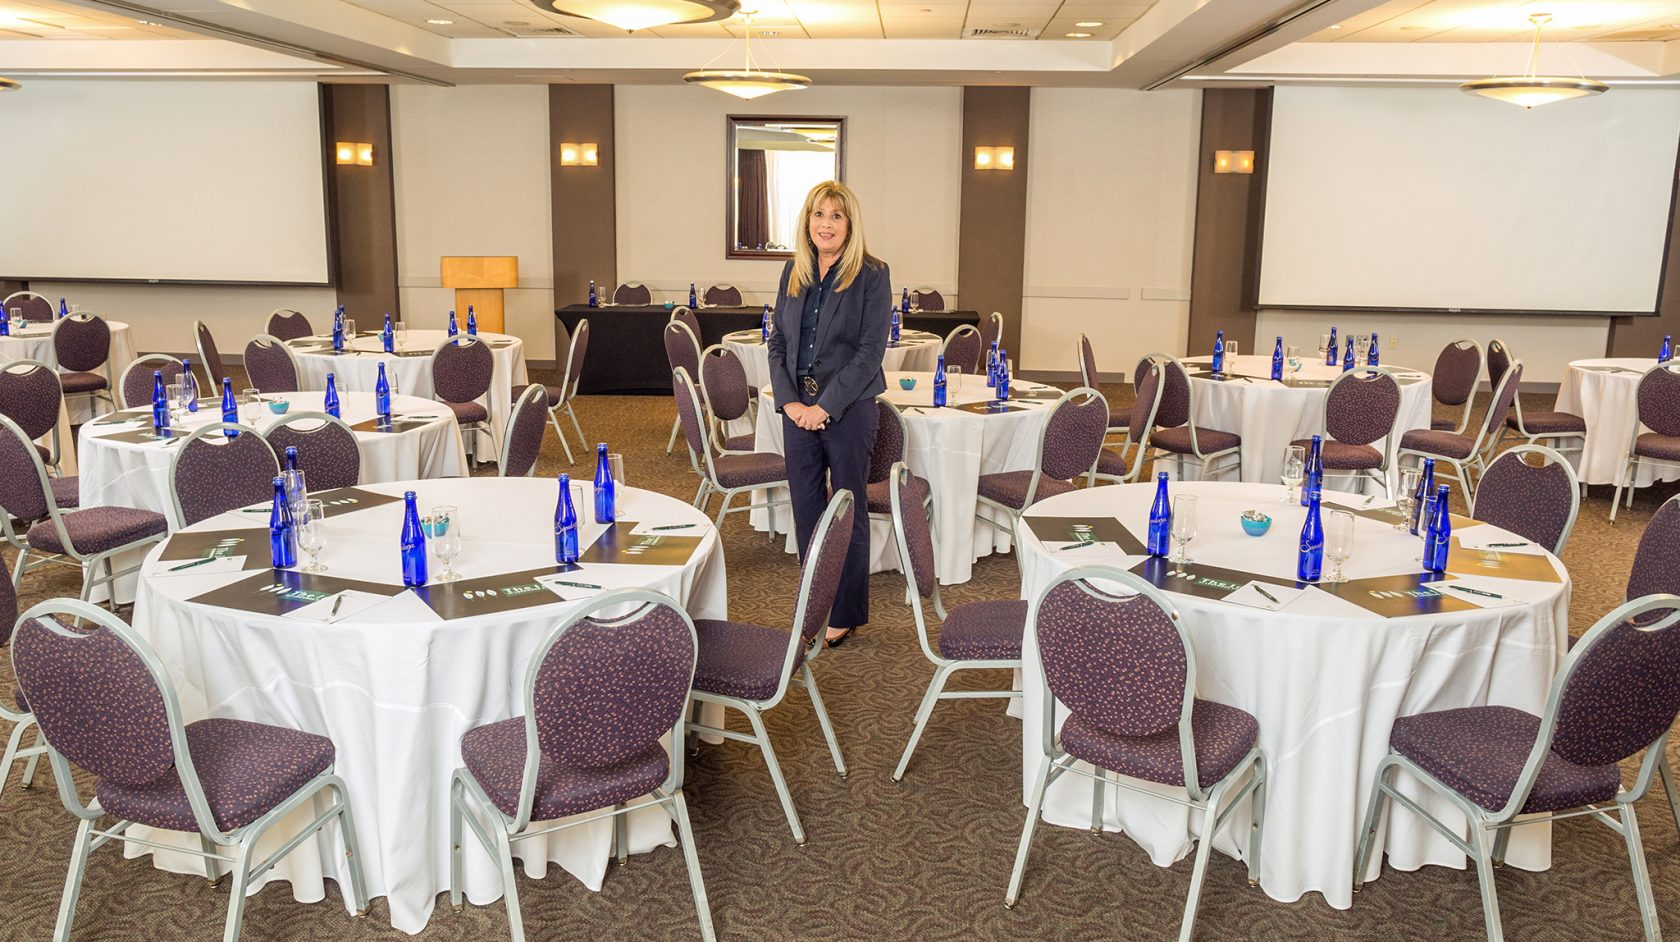 boston meeting room and planner at the inn at longwood medical